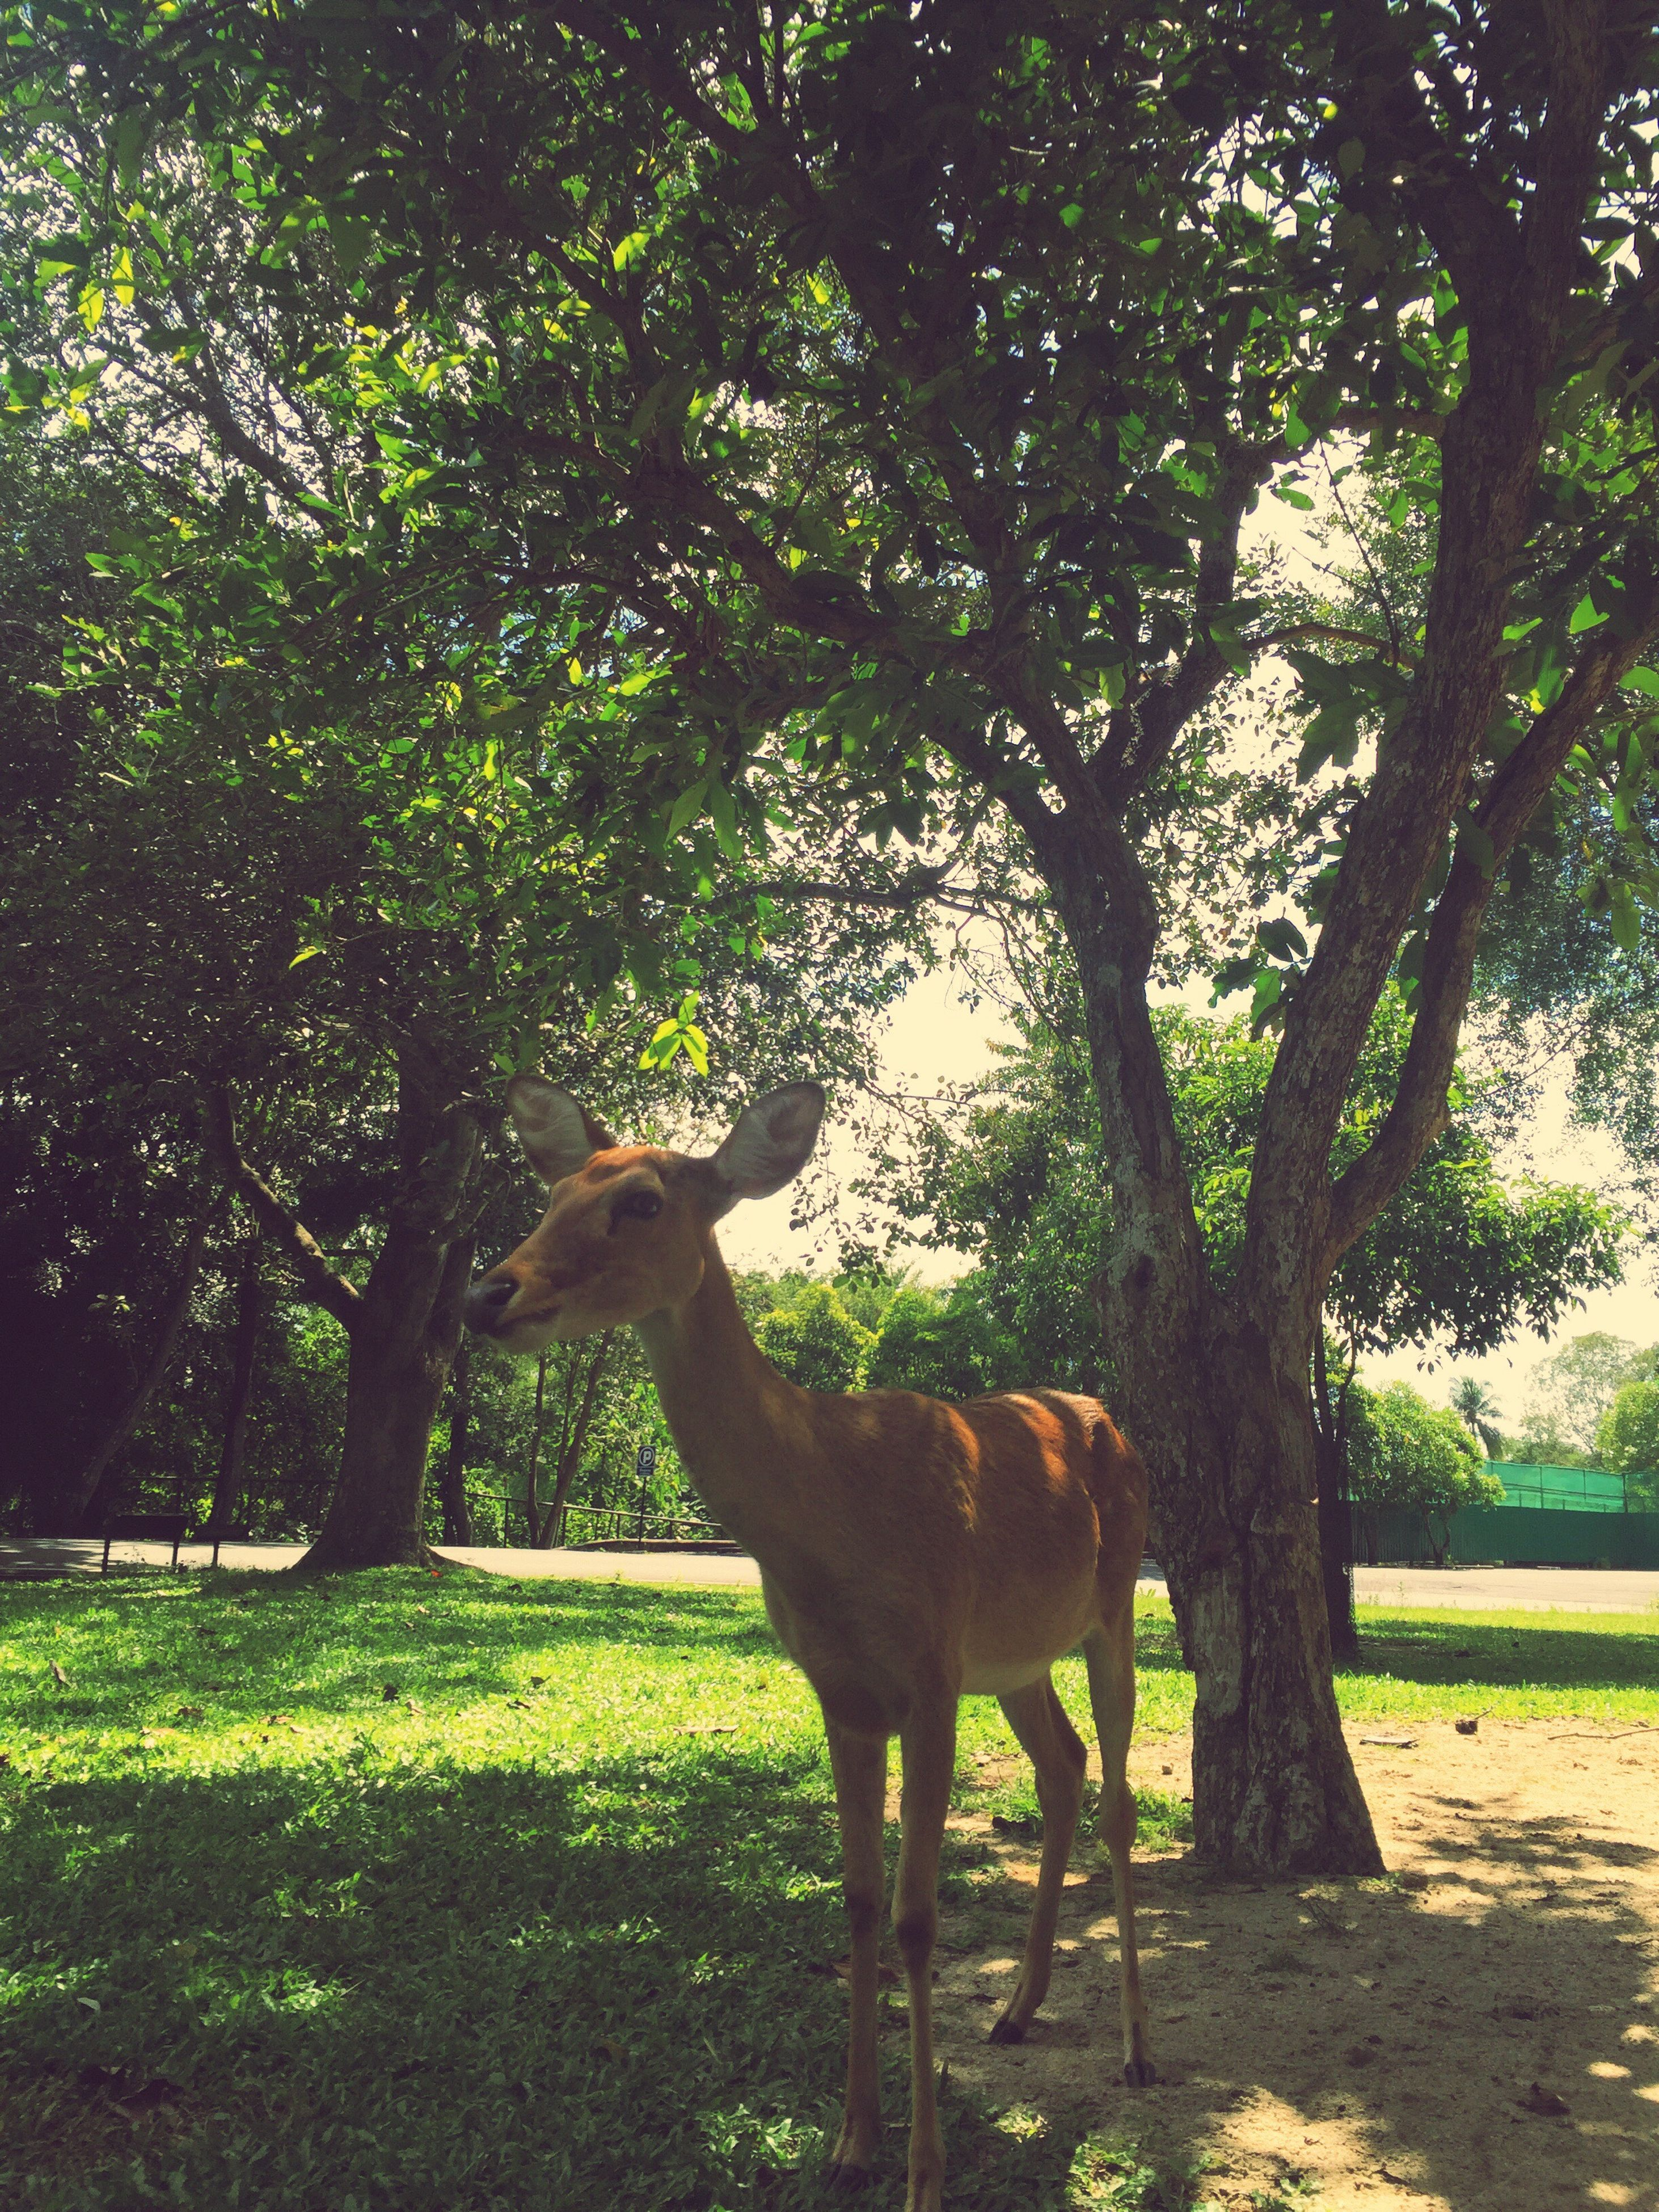 tree, animal themes, one animal, full length, standing, side view, grass, mammal, domestic animals, green color, field, growth, herbivorous, livestock, tree trunk, green, looking, zoology, day, nature, tranquility, domestic cattle, outdoors, no people, grassy